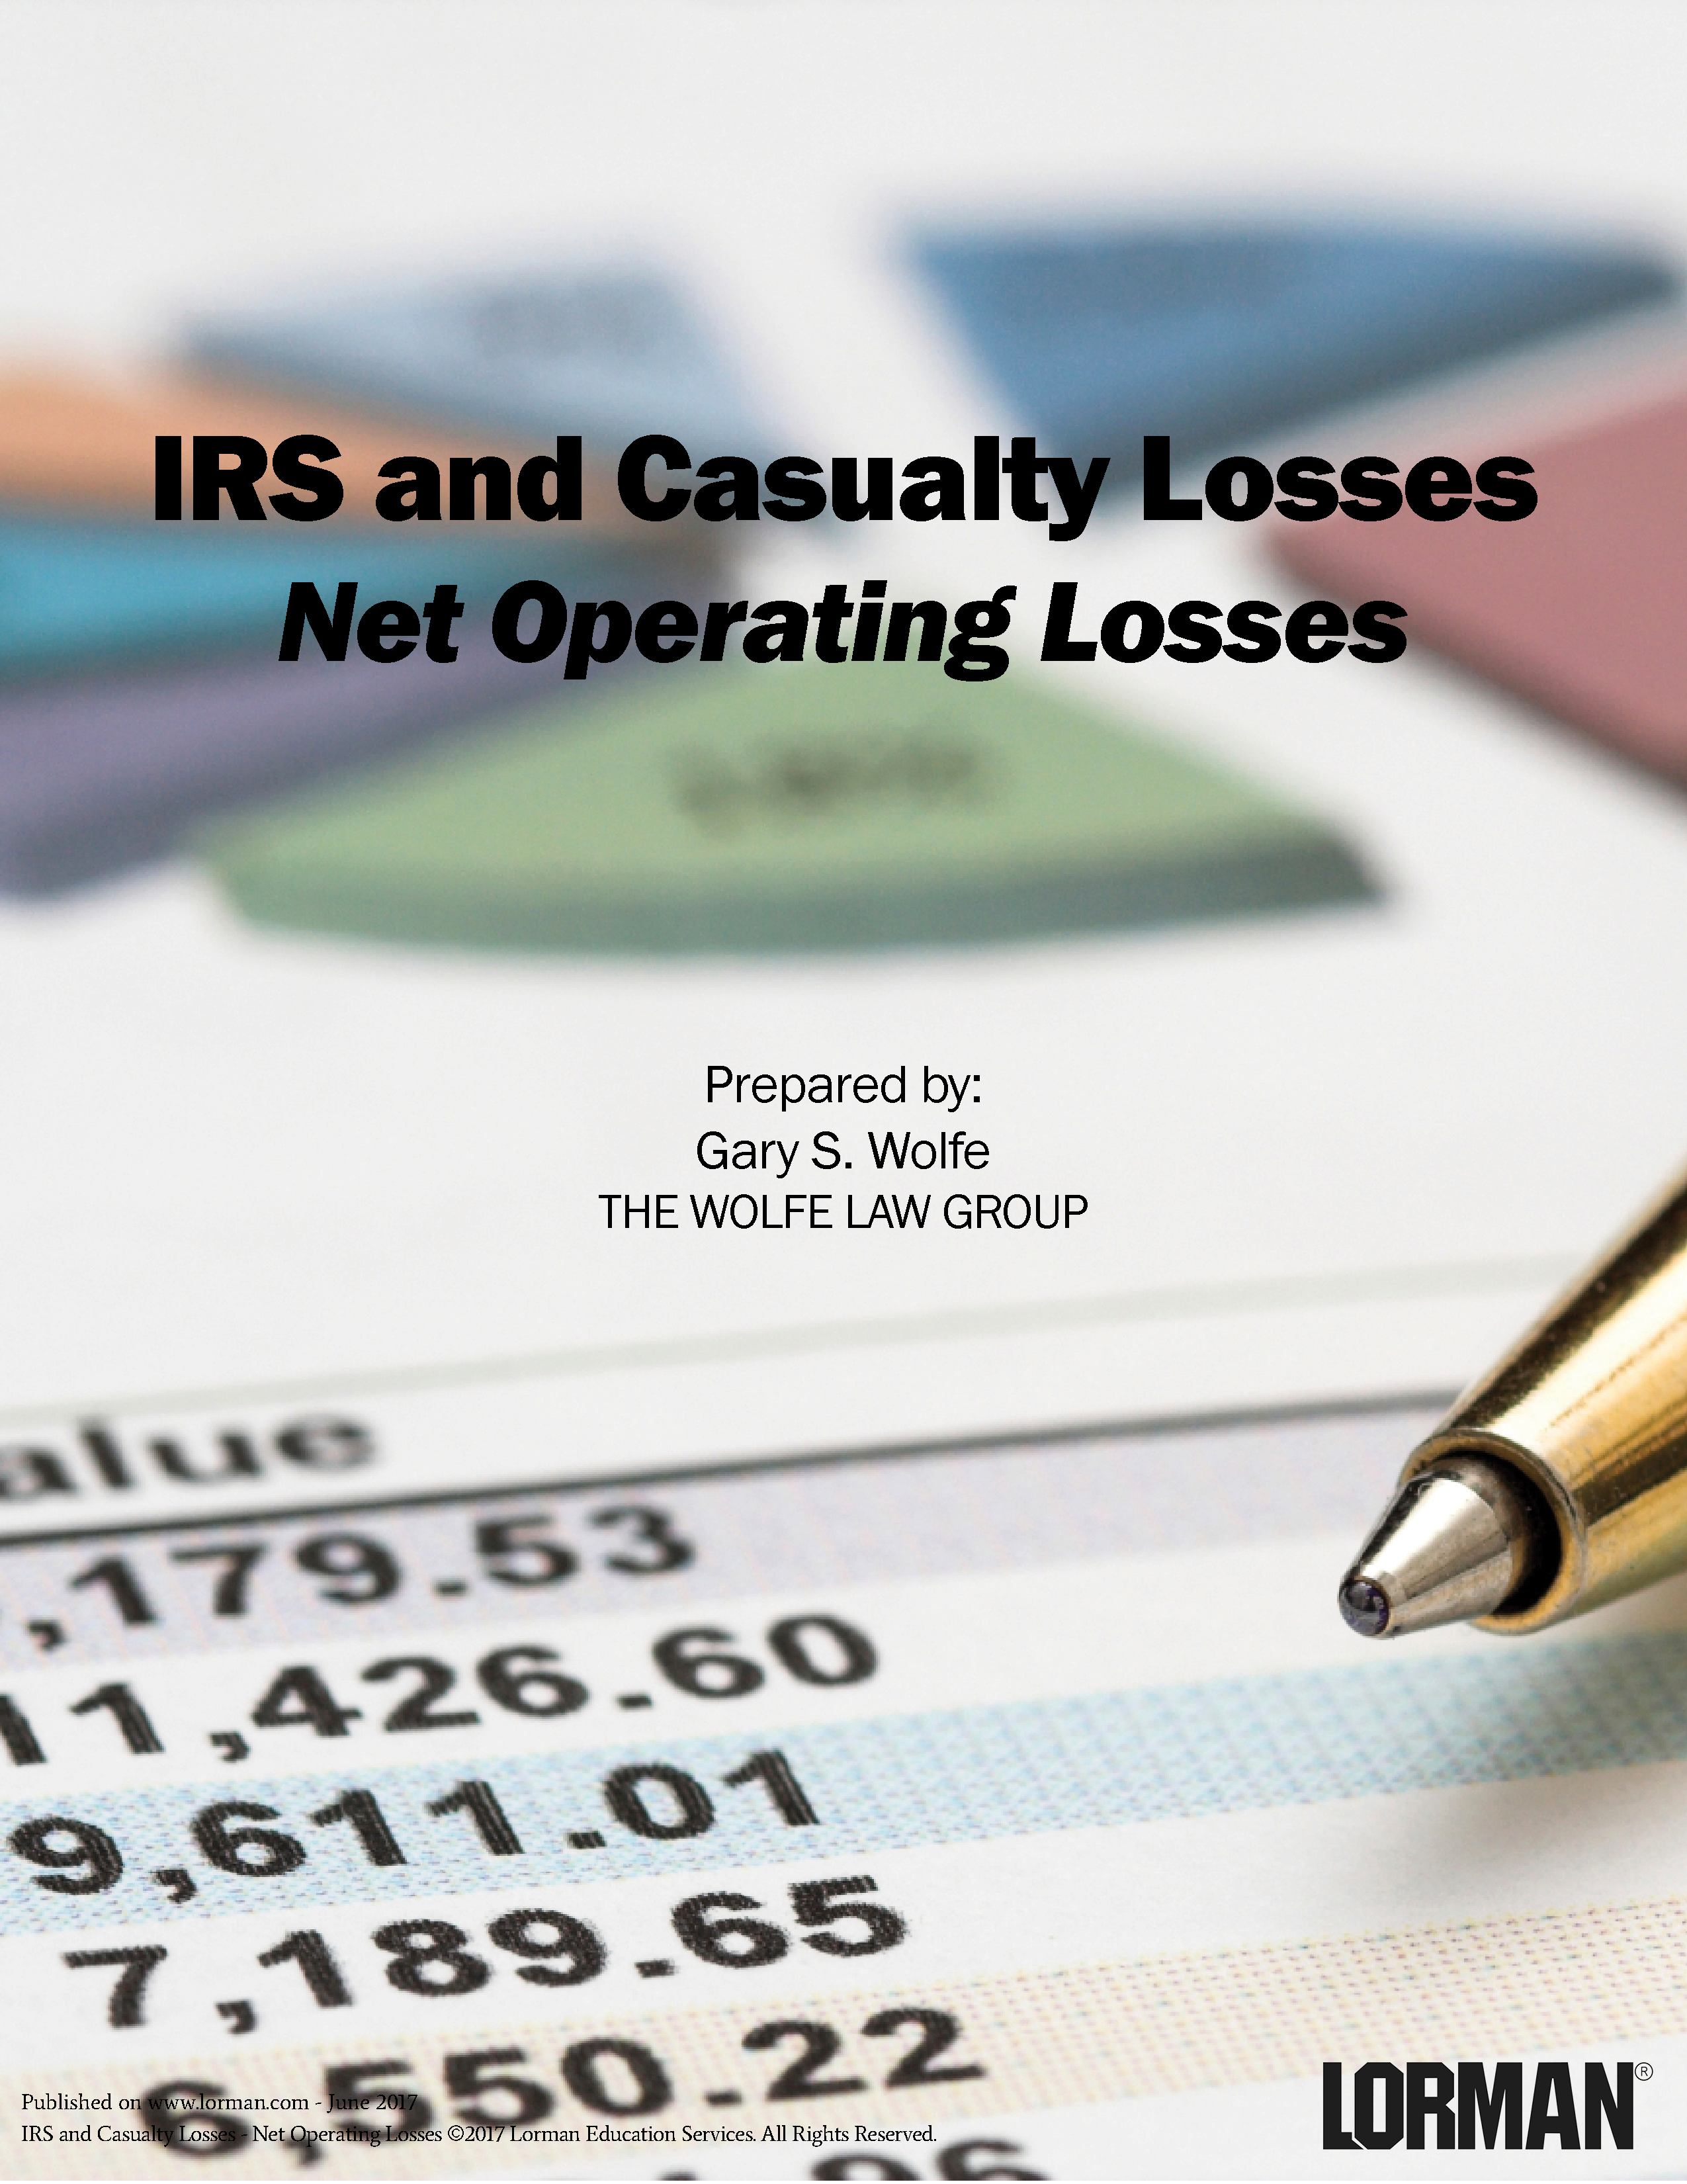 IRS and Casualty Losses - Net Operating Losses